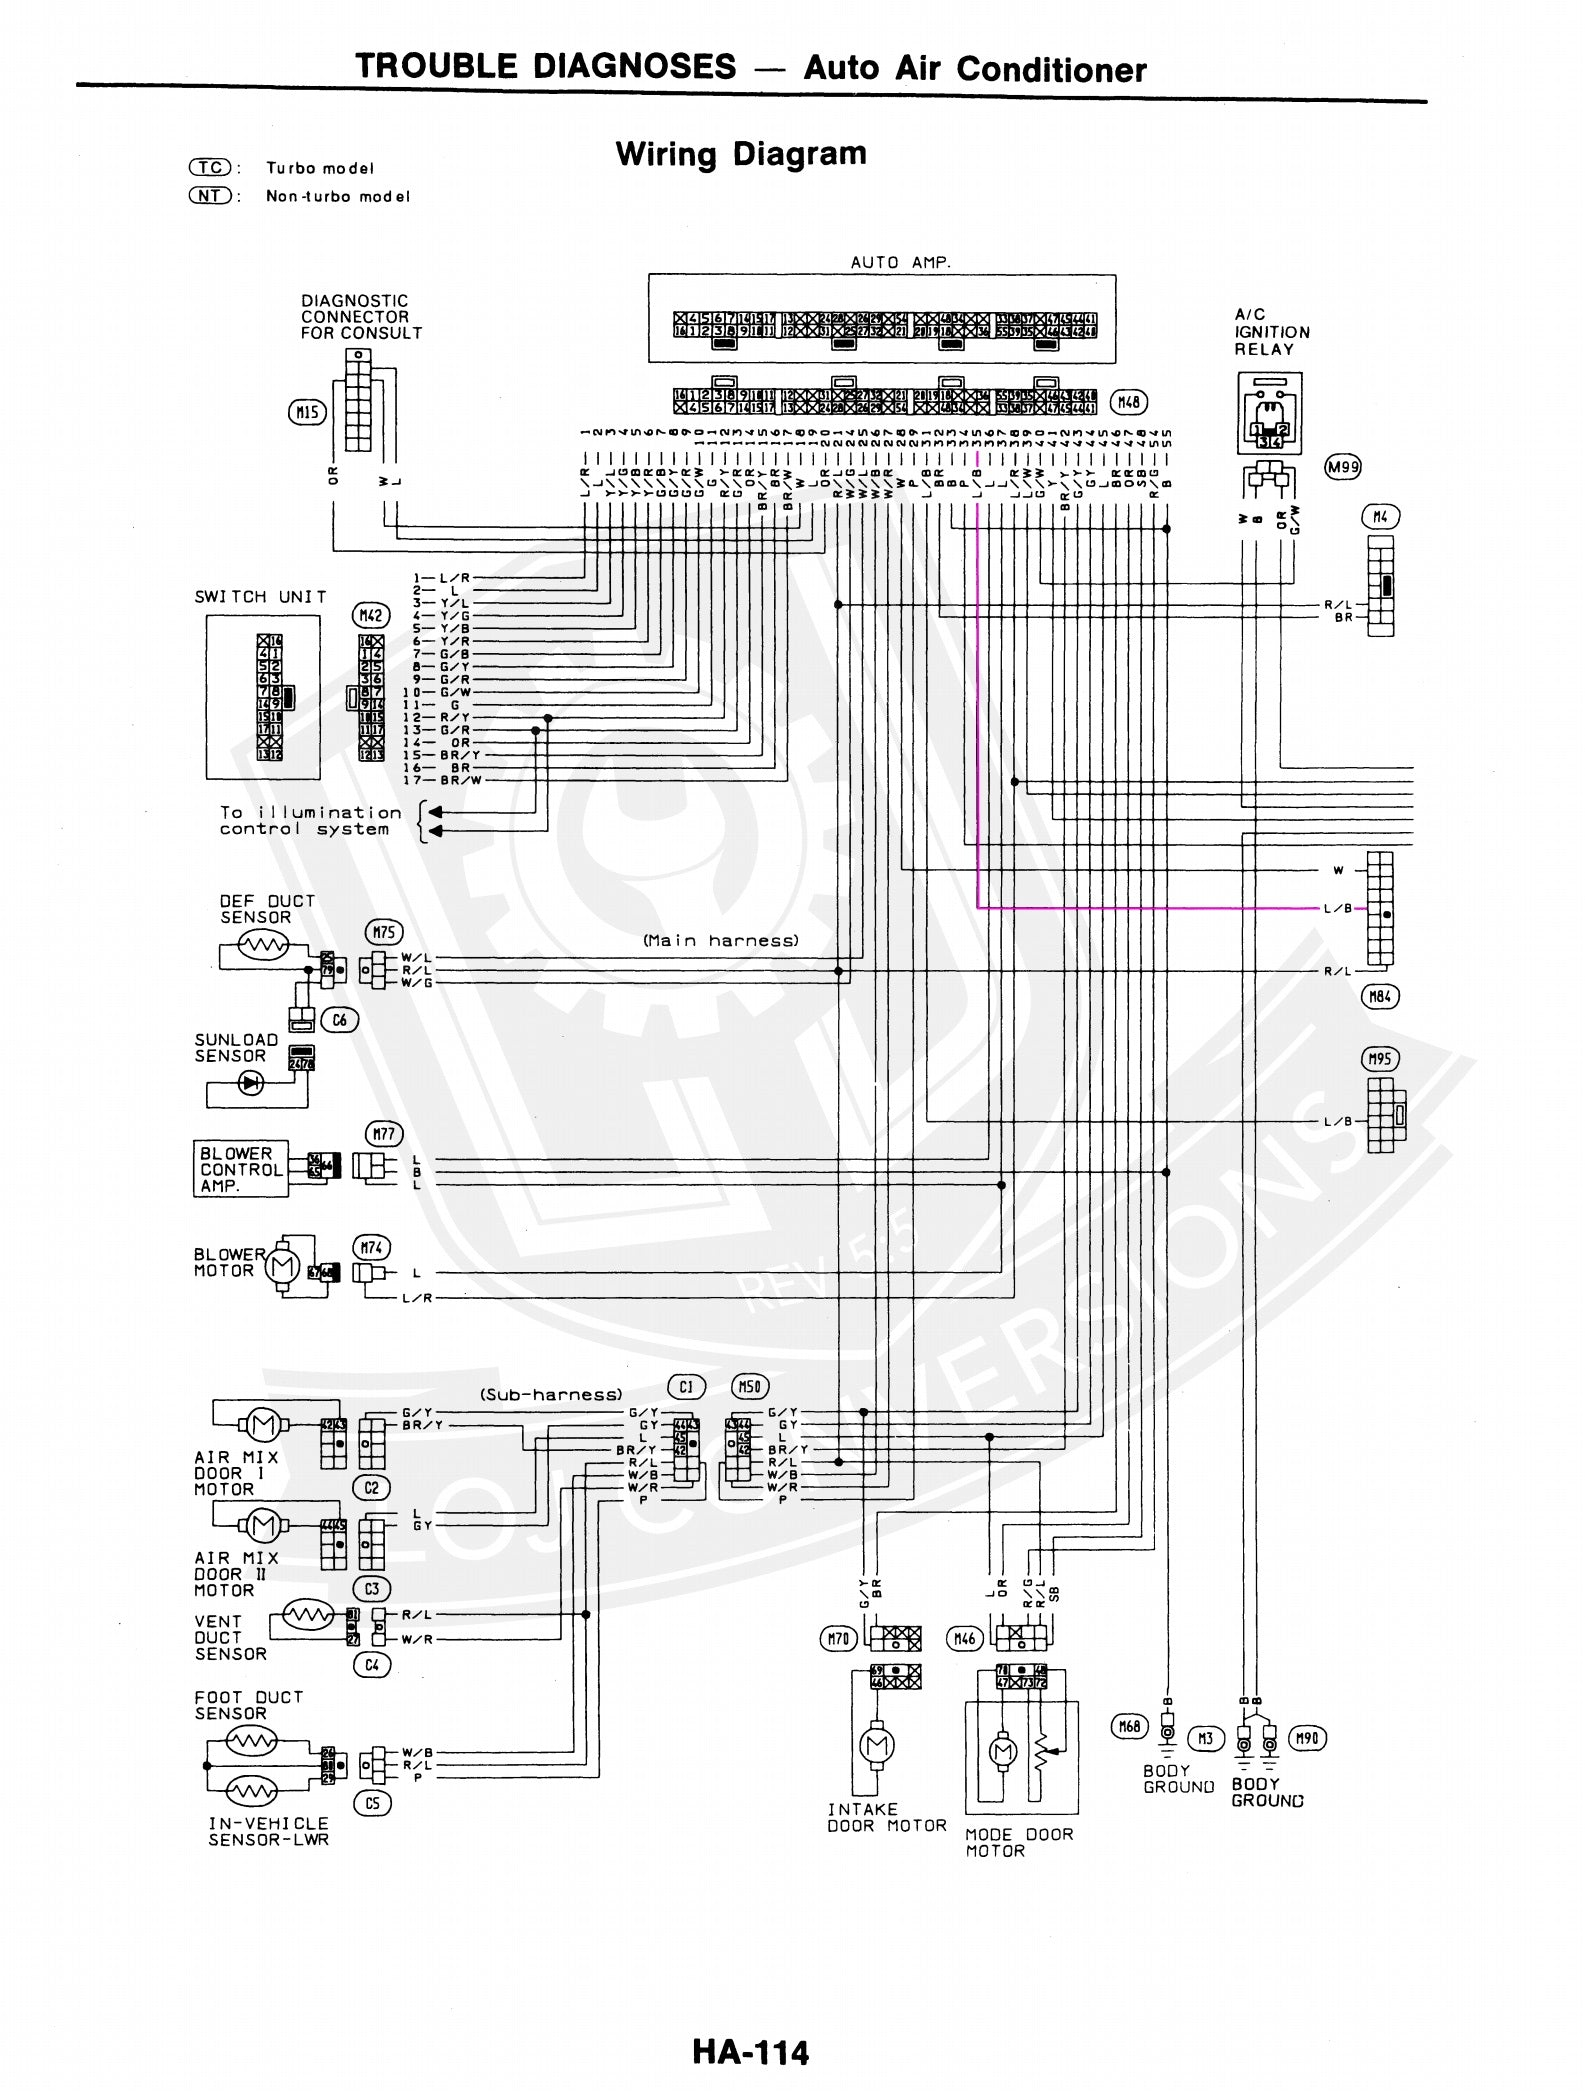 wiring the ac in a 300zx engine conversion loj conversions rh lojkits com  1986 Nissan 300ZX Wiring-Diagram 300ZX Trunk Diagrams